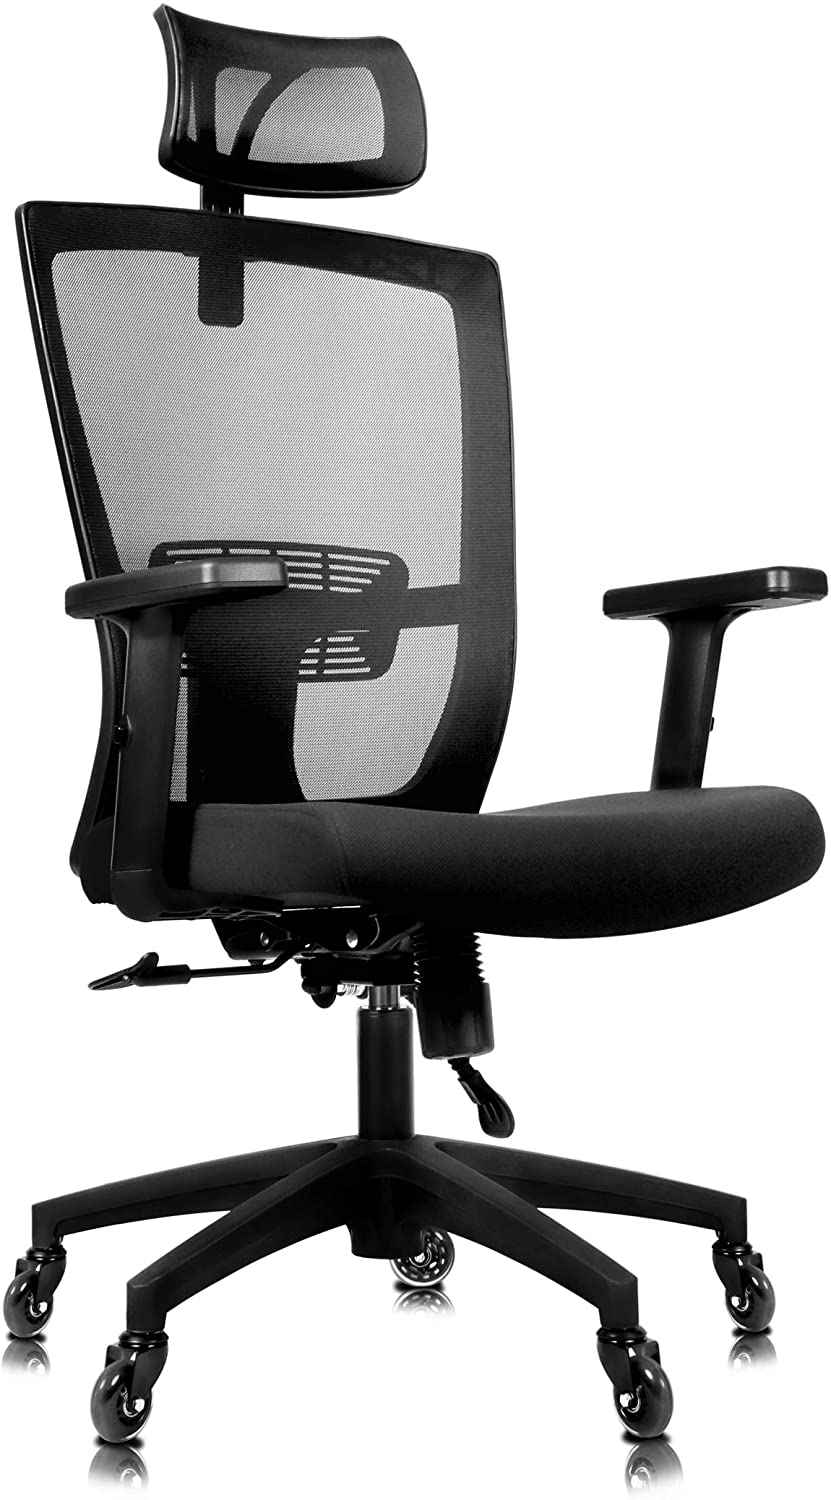 Becko Ergonomic Adjustable Office Chair with Roller Blade Wheels for Home and Office - with Breathable Mesh Backrest, Thick Comfy Cushion, Back Support, Retractable headrest & Armrests (Black)